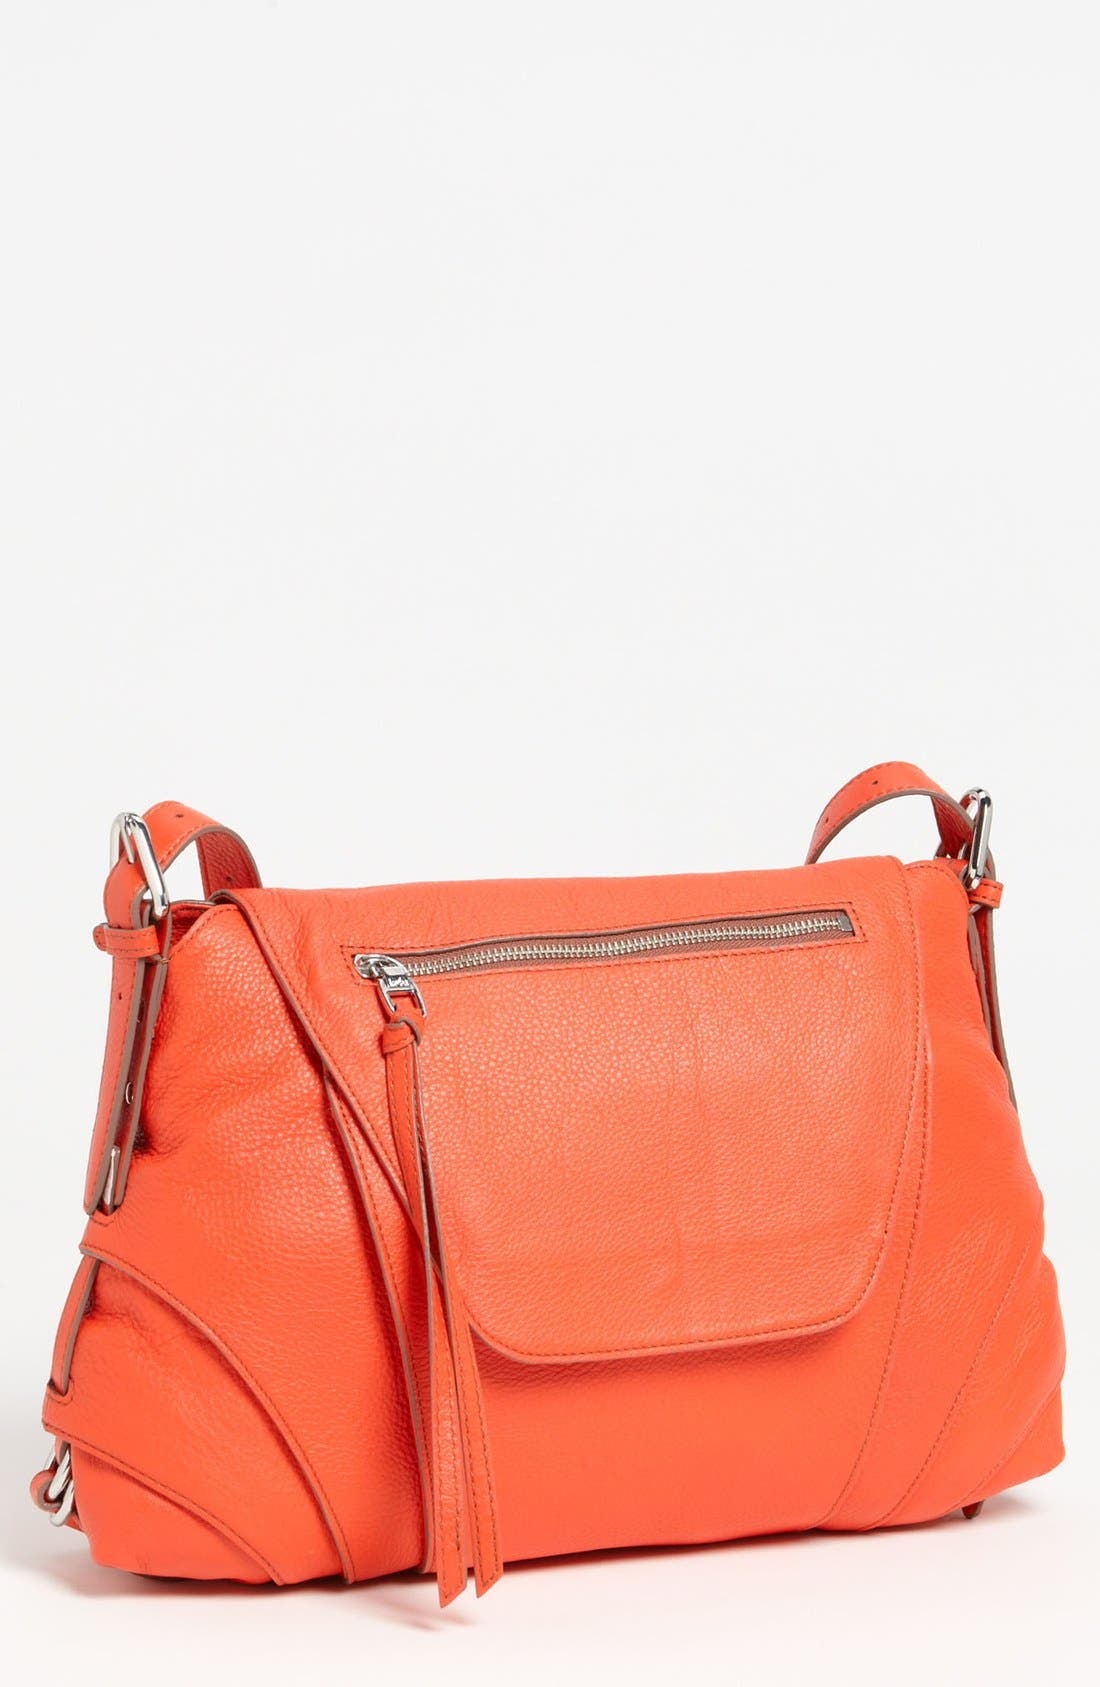 Main Image - Kooba 'Brielle' Leather Crossbody Bag